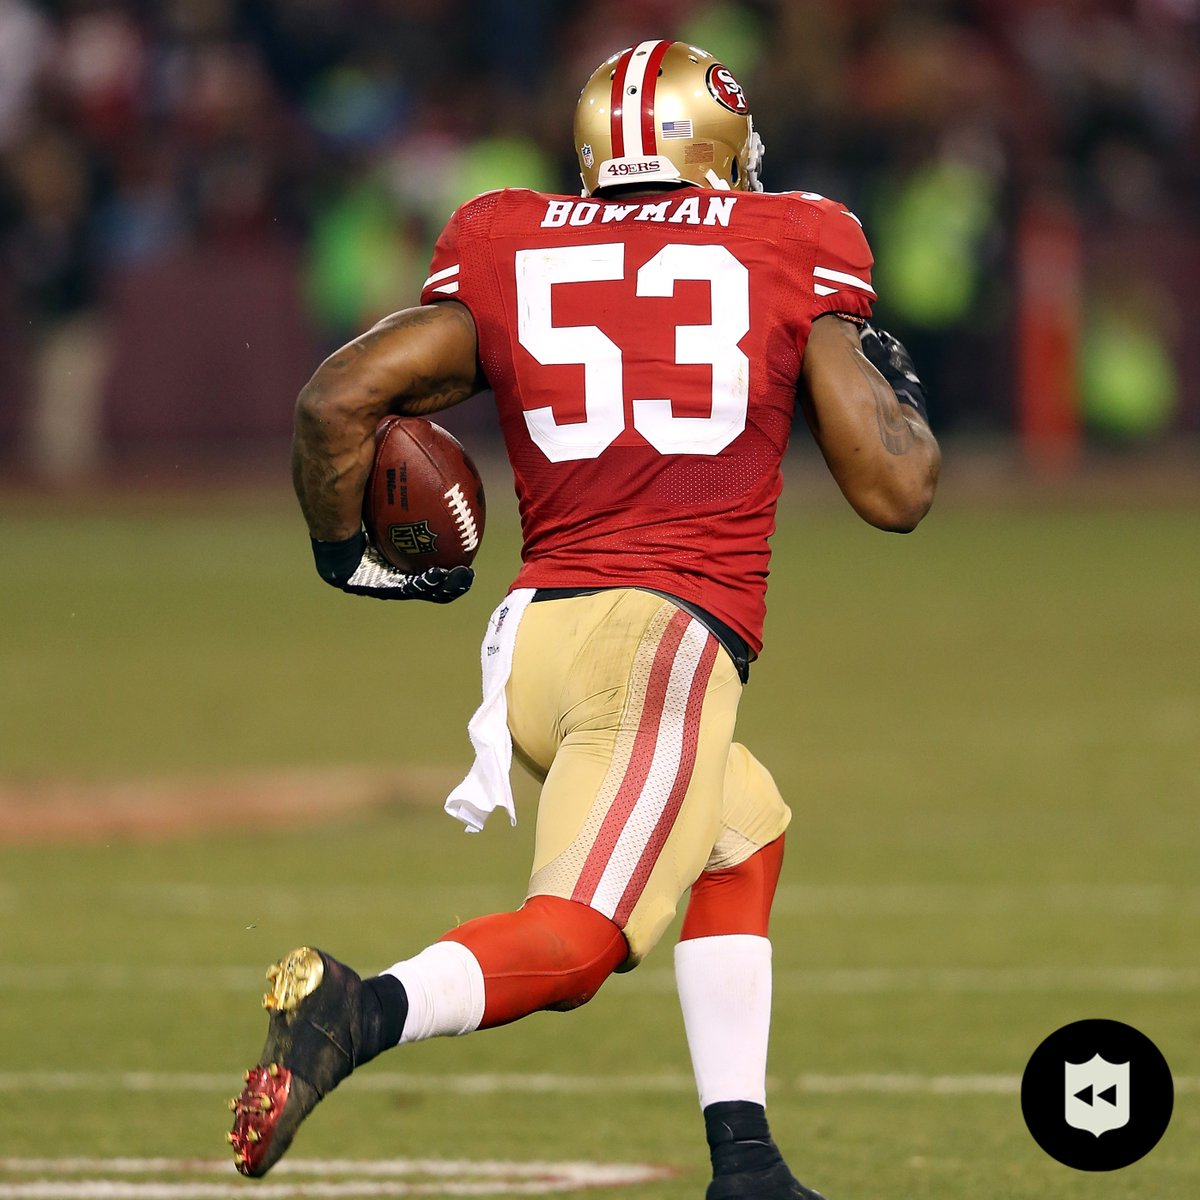 "Happy 32nd birthday to 4x All-Pro LB @NBowman53!  His only career touchdown was an iconic one: ""The Pick At The Stick"" @49ers (Dec. 23, 2013) https://t.co/1OeV8lsbco"